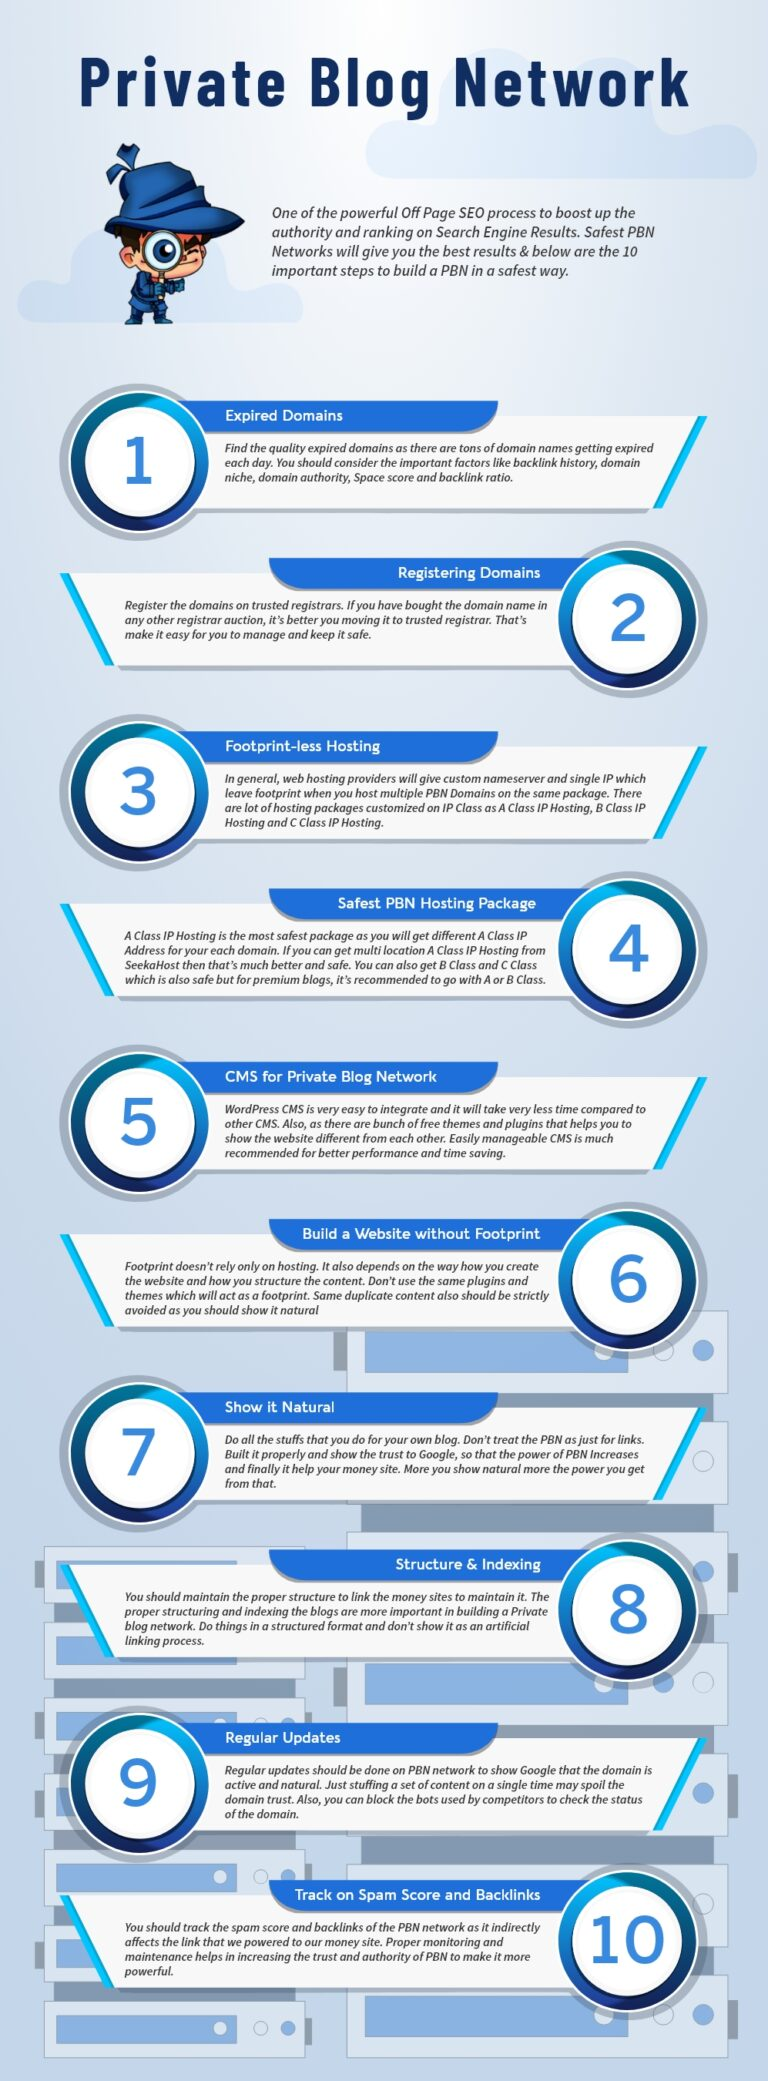 best-steps-to-build-a-successful-private-blog-network